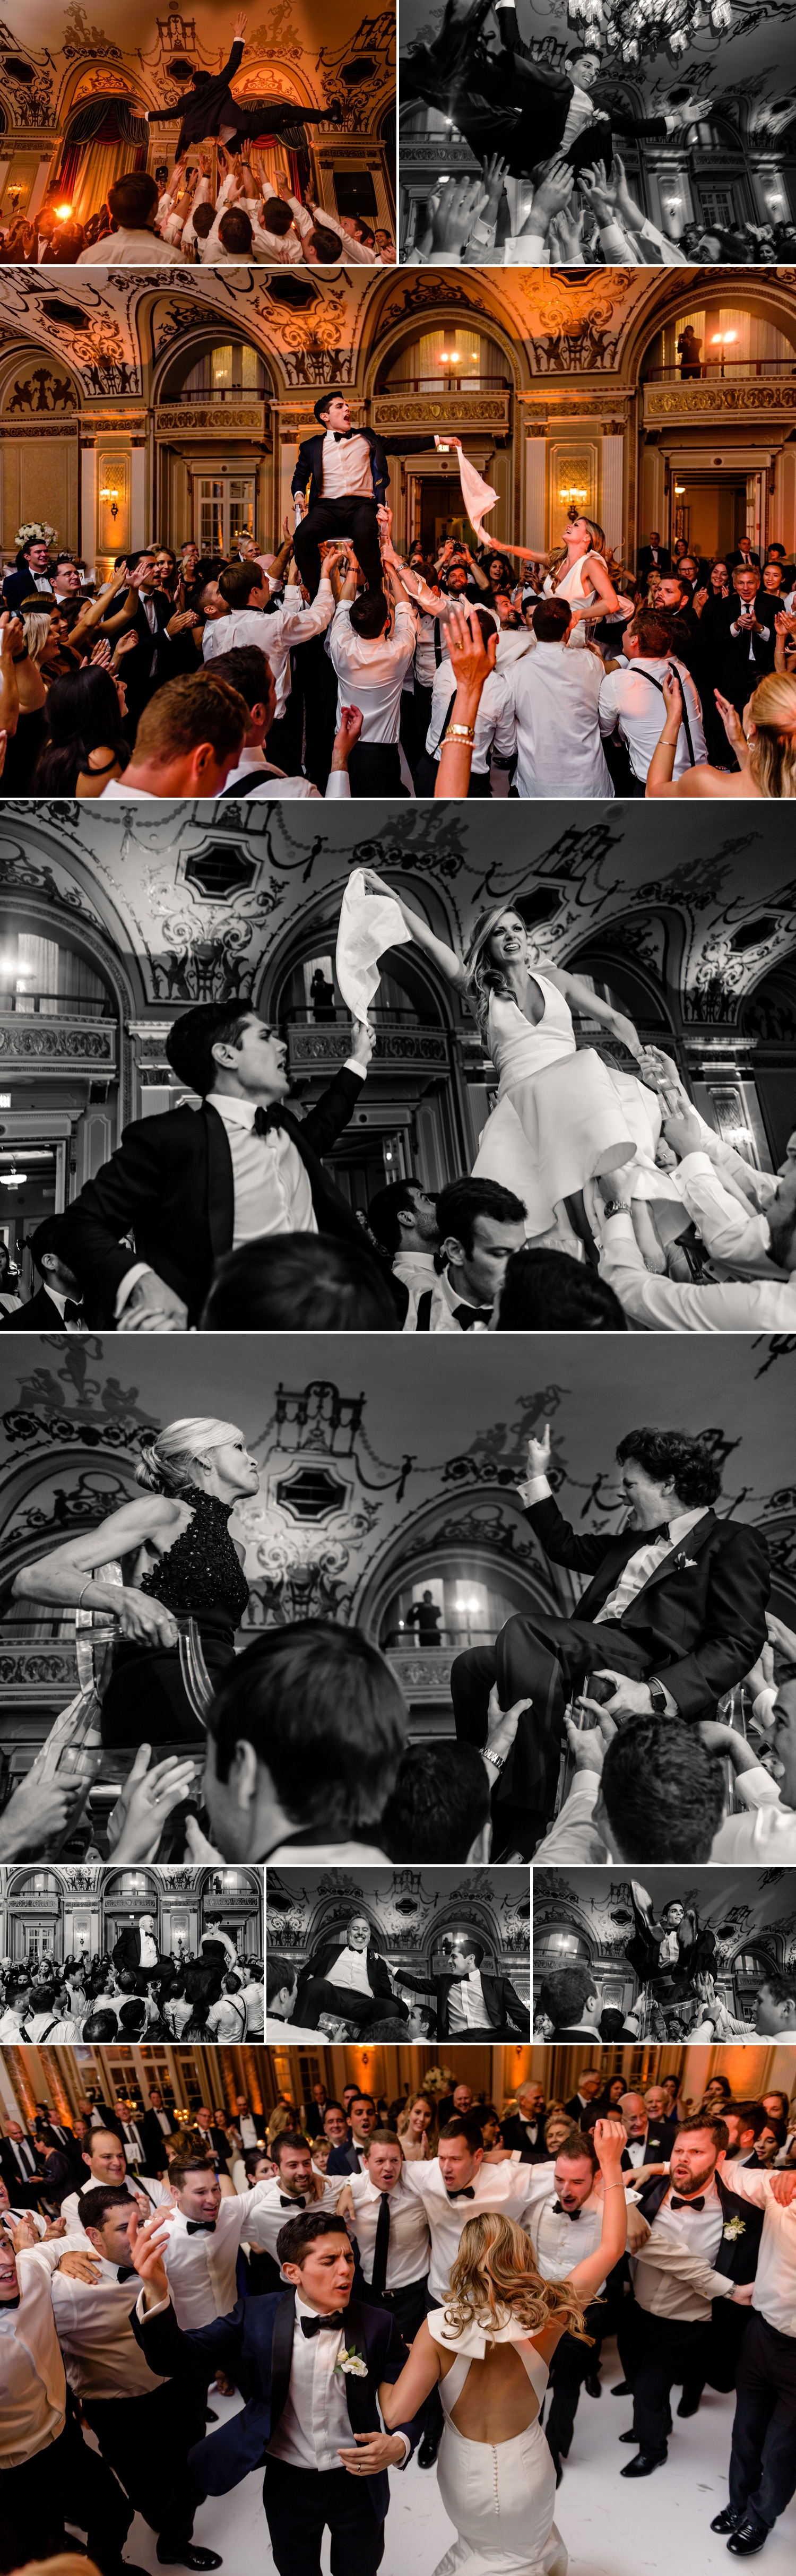 photos of candid moments of the hora during a jewish wedding at the chateau laurier wedding in ottawa ontario